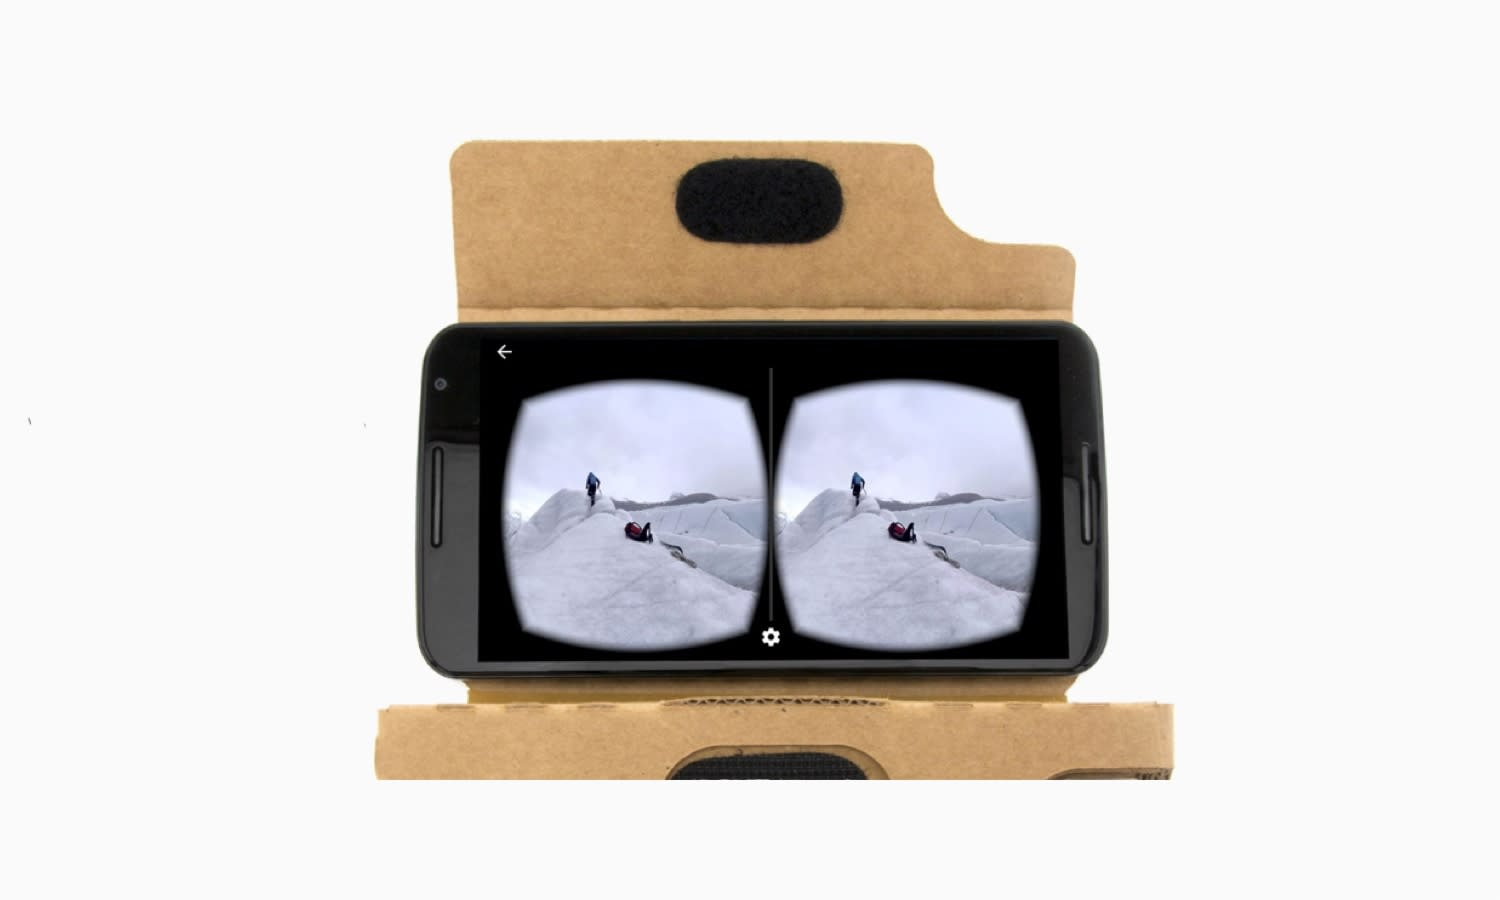 Google Reportedly Working on Self-Contained VR System